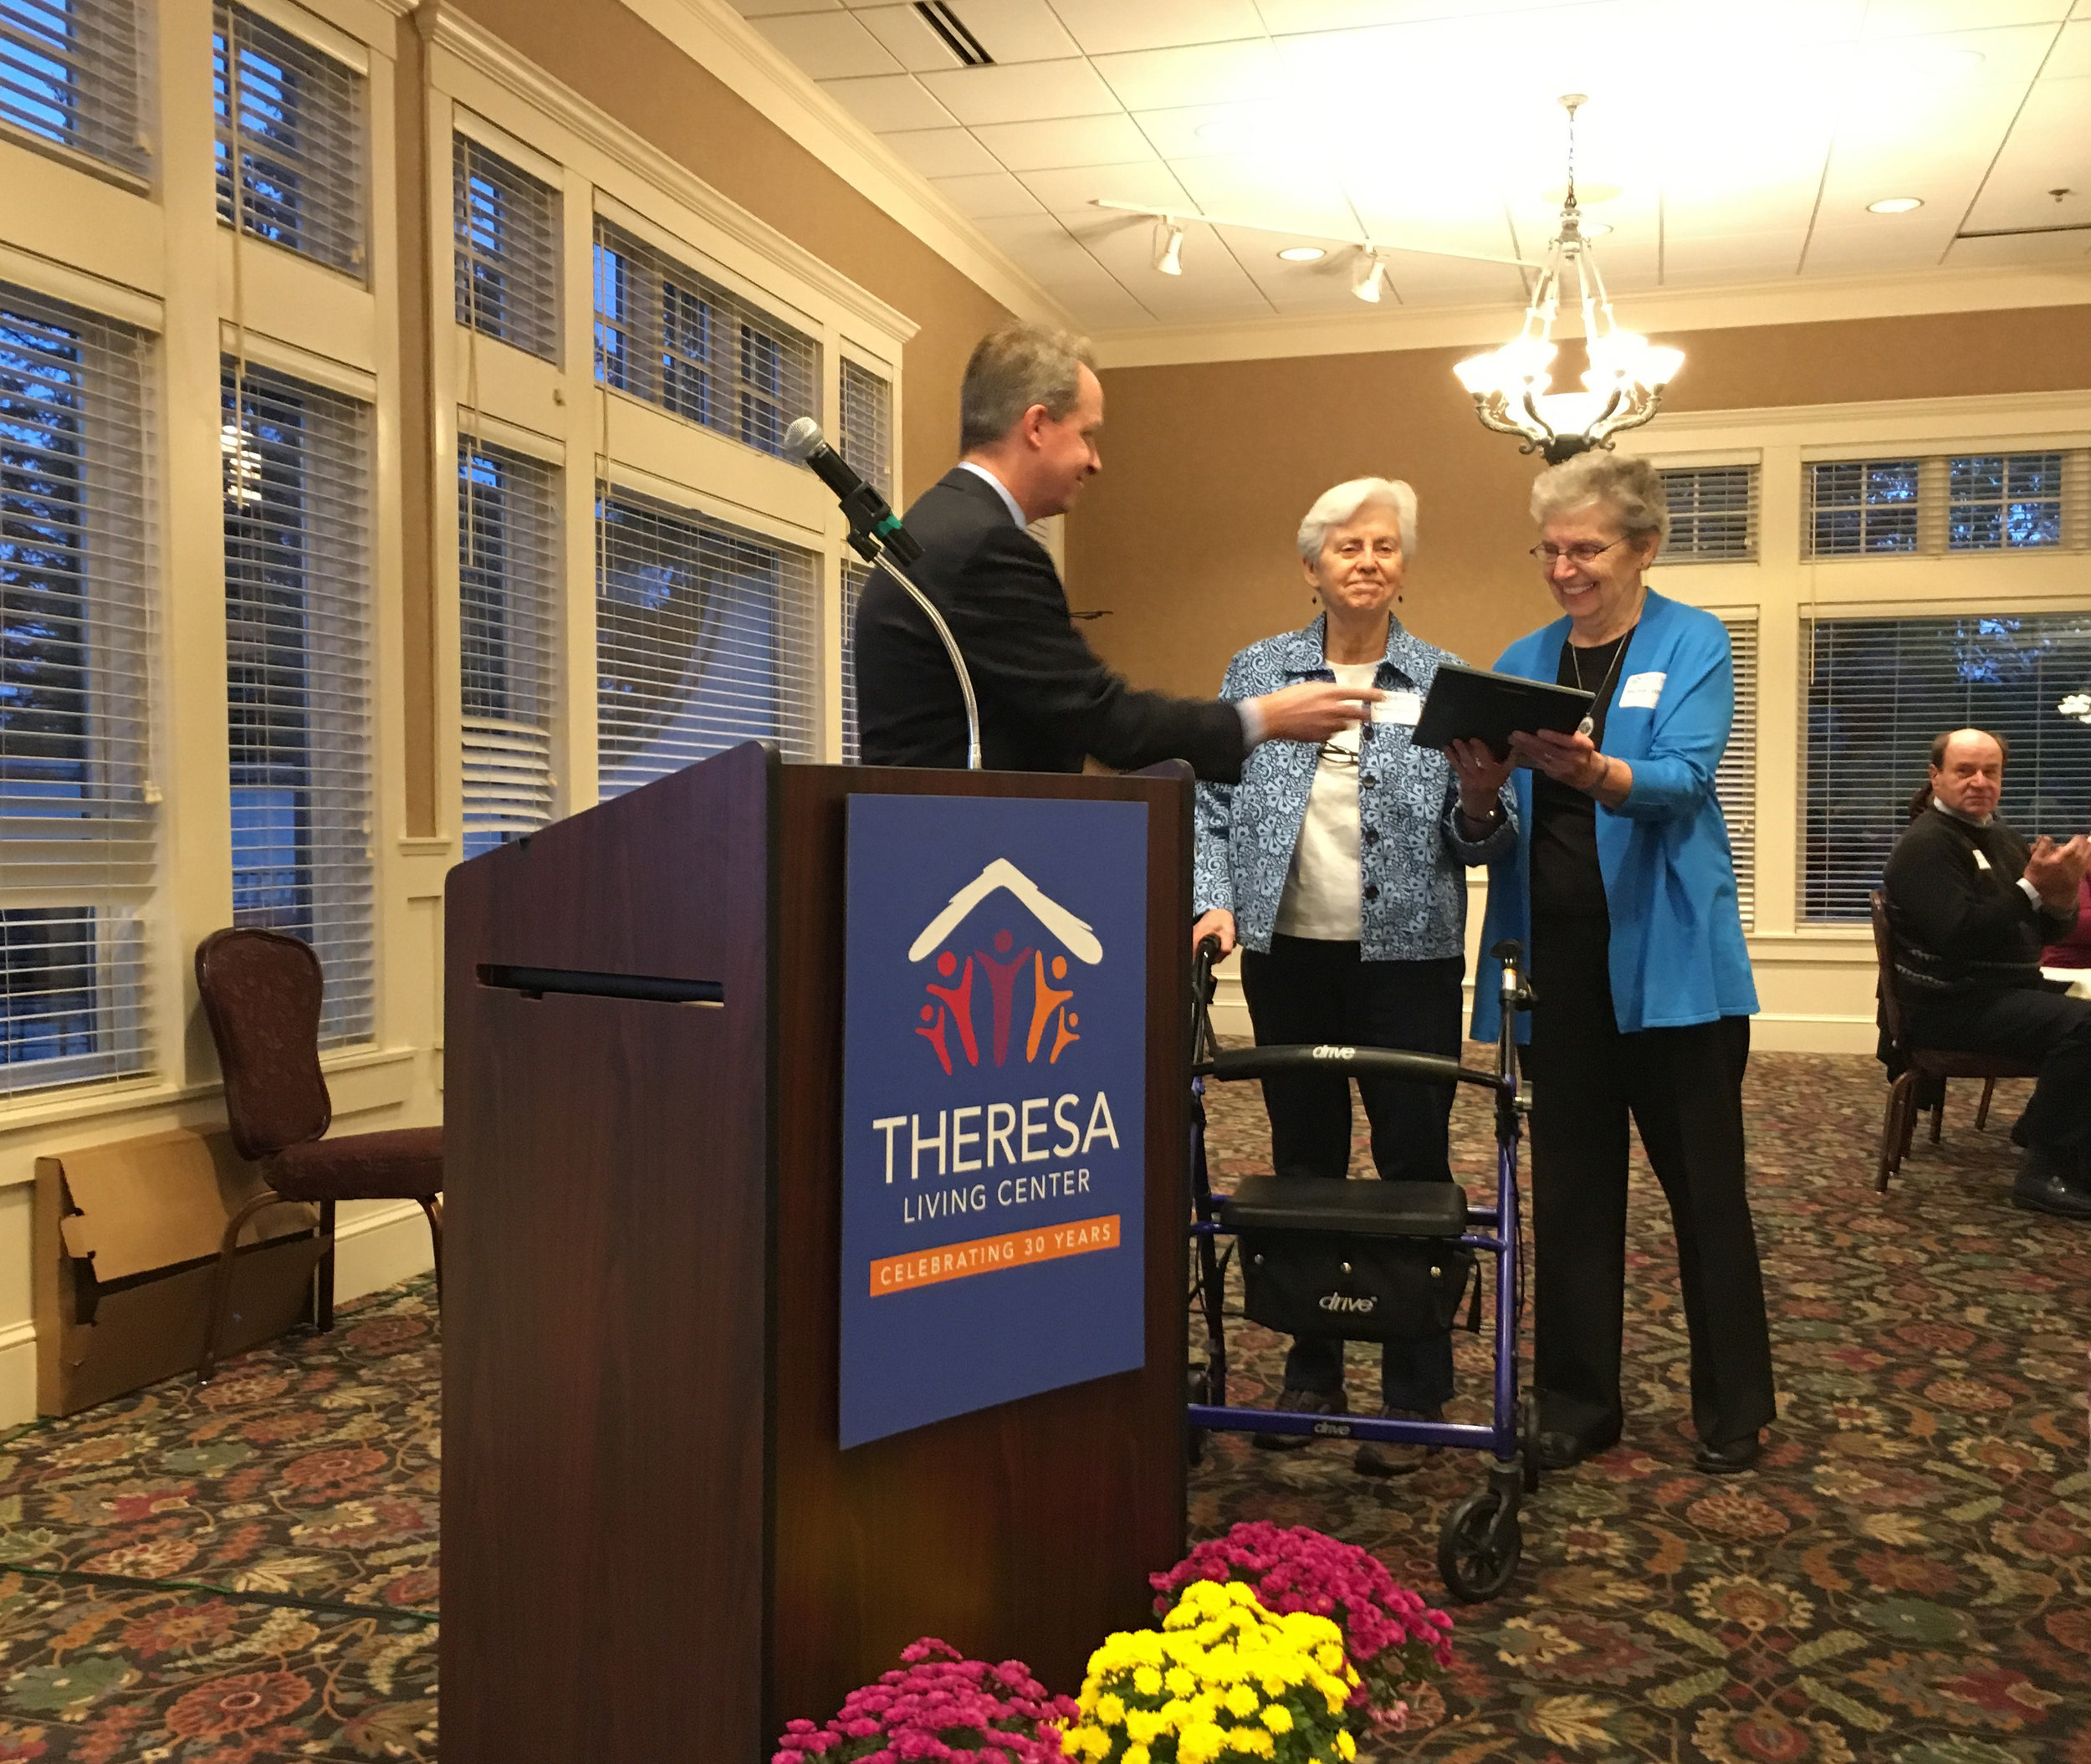 Board Chair Dennis WIlliams gives a plaque to Sisters Marilyn Orchard and Rita Jirik of the School Sisters of Notre Dame. Sisters Marilyn and Rita founded Theresa Living Center, which opened its doors to help homeless women and children in 1988 as a project to honor Mother Theresa Gerhardinger, an educator of girls and the foundress of their order.